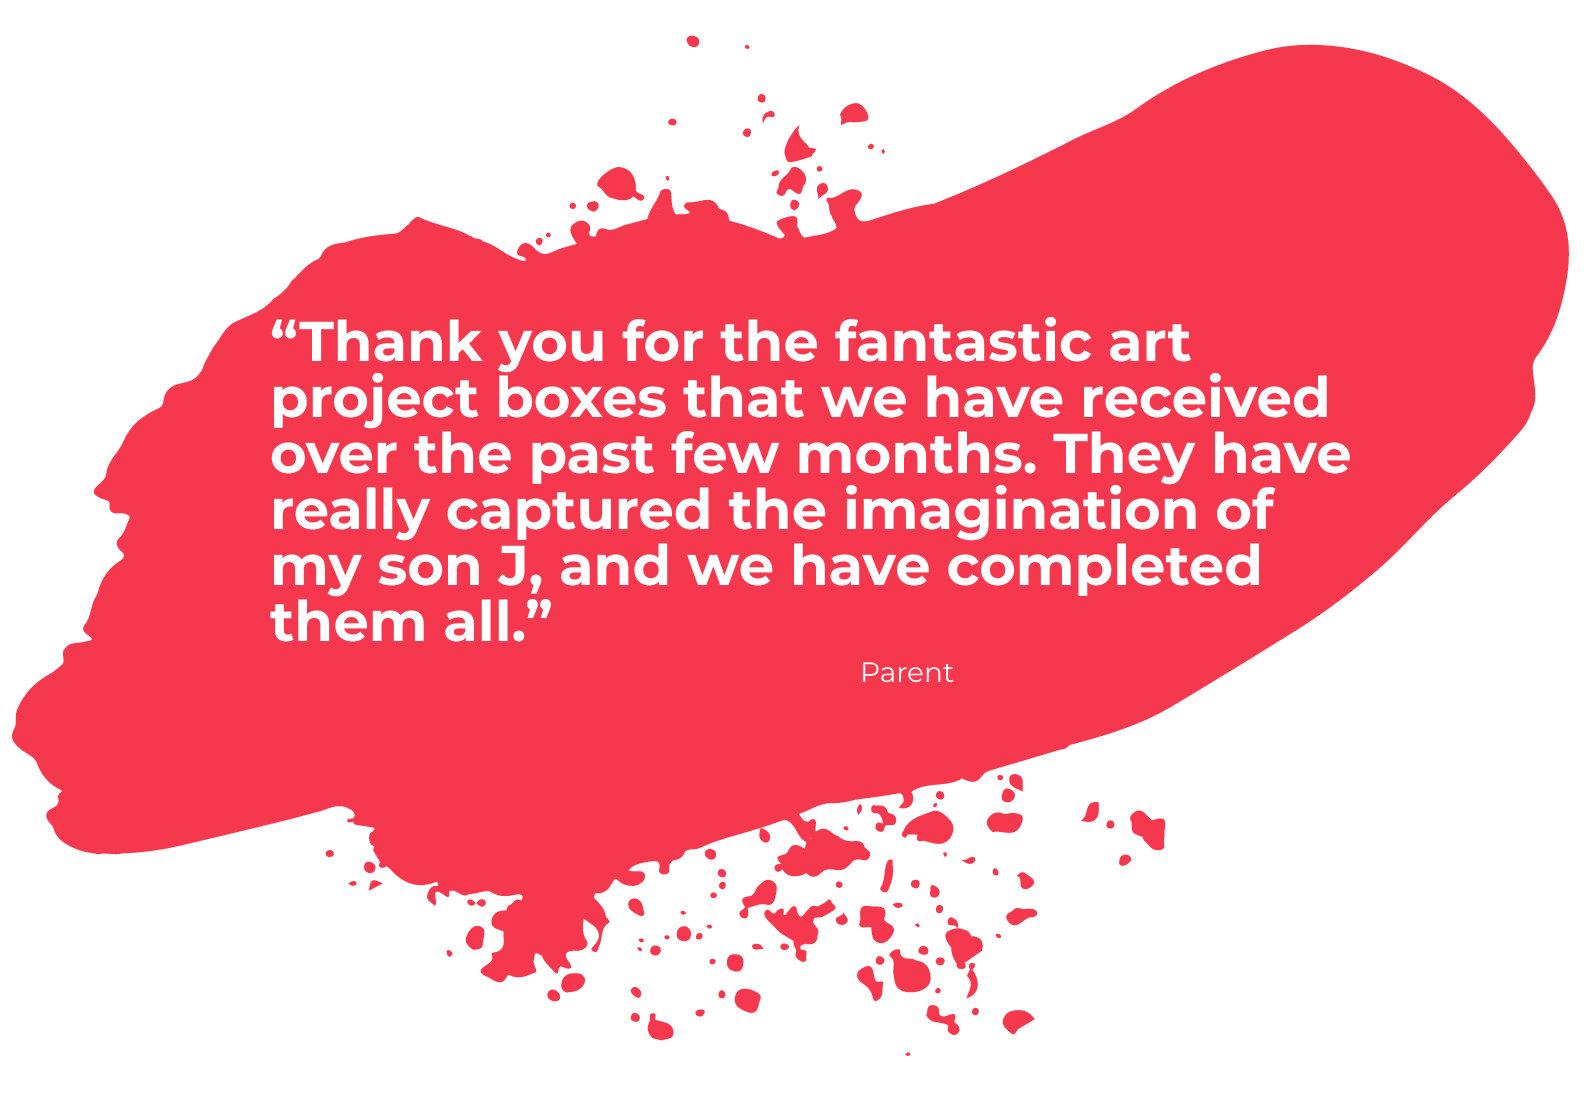 """Red paint splodge with a quote from a parent: """"Thank you for the fantastic art project boxes that we have received over the past few months. They have really captured the imagination of my son J, and we have completed them all."""""""